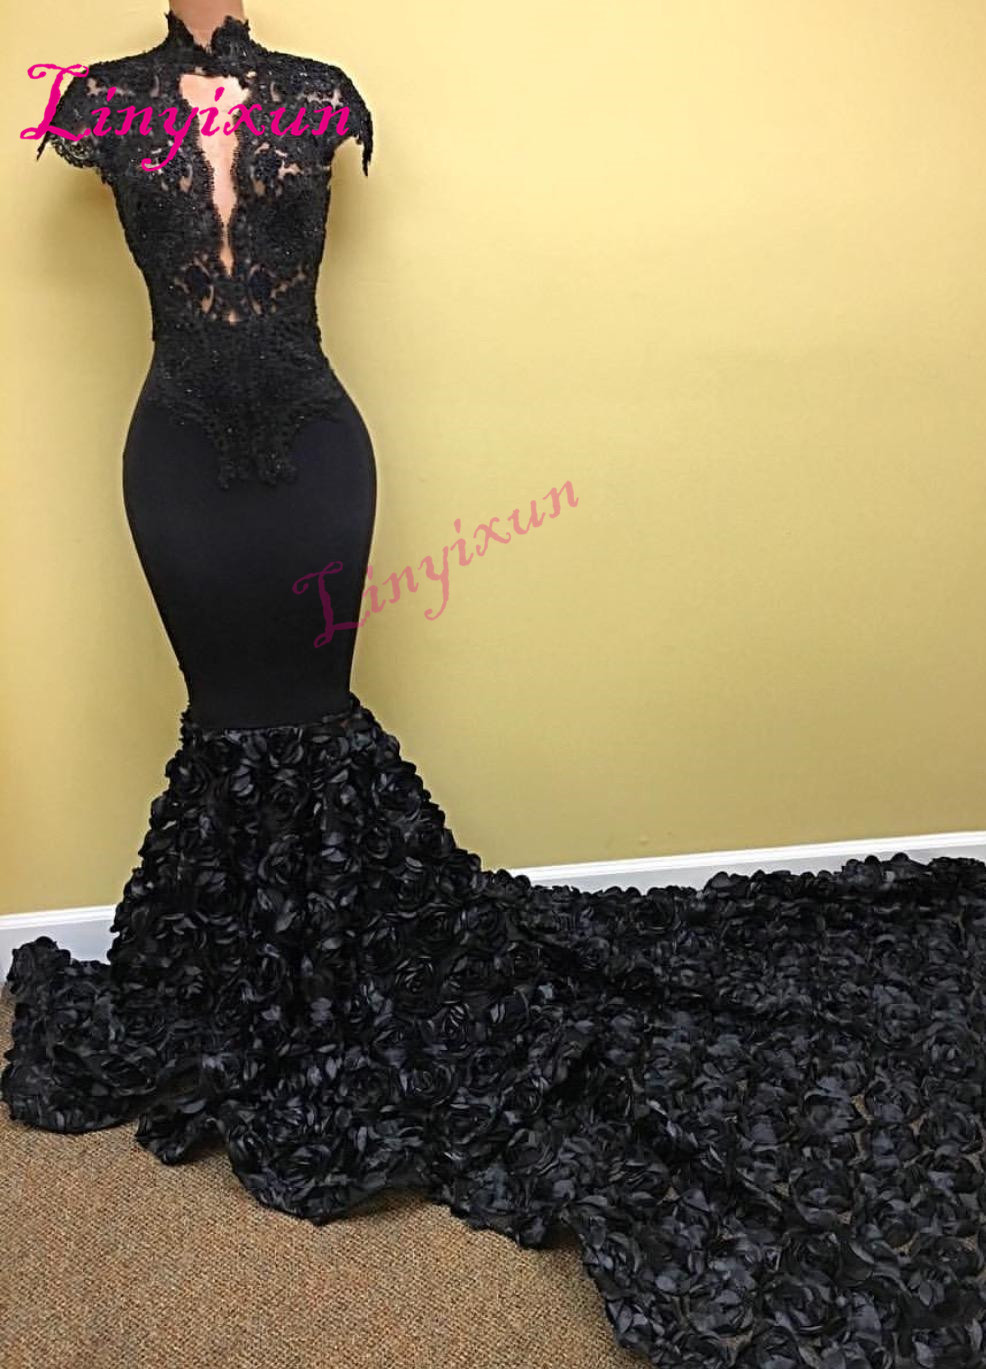 Linyixun Sexy Mermaid   Prom     Dresses   2018 High Neck Cap Sleeves Flowers Lace Long Chapel Train Formal Party Gown Evening   Dress